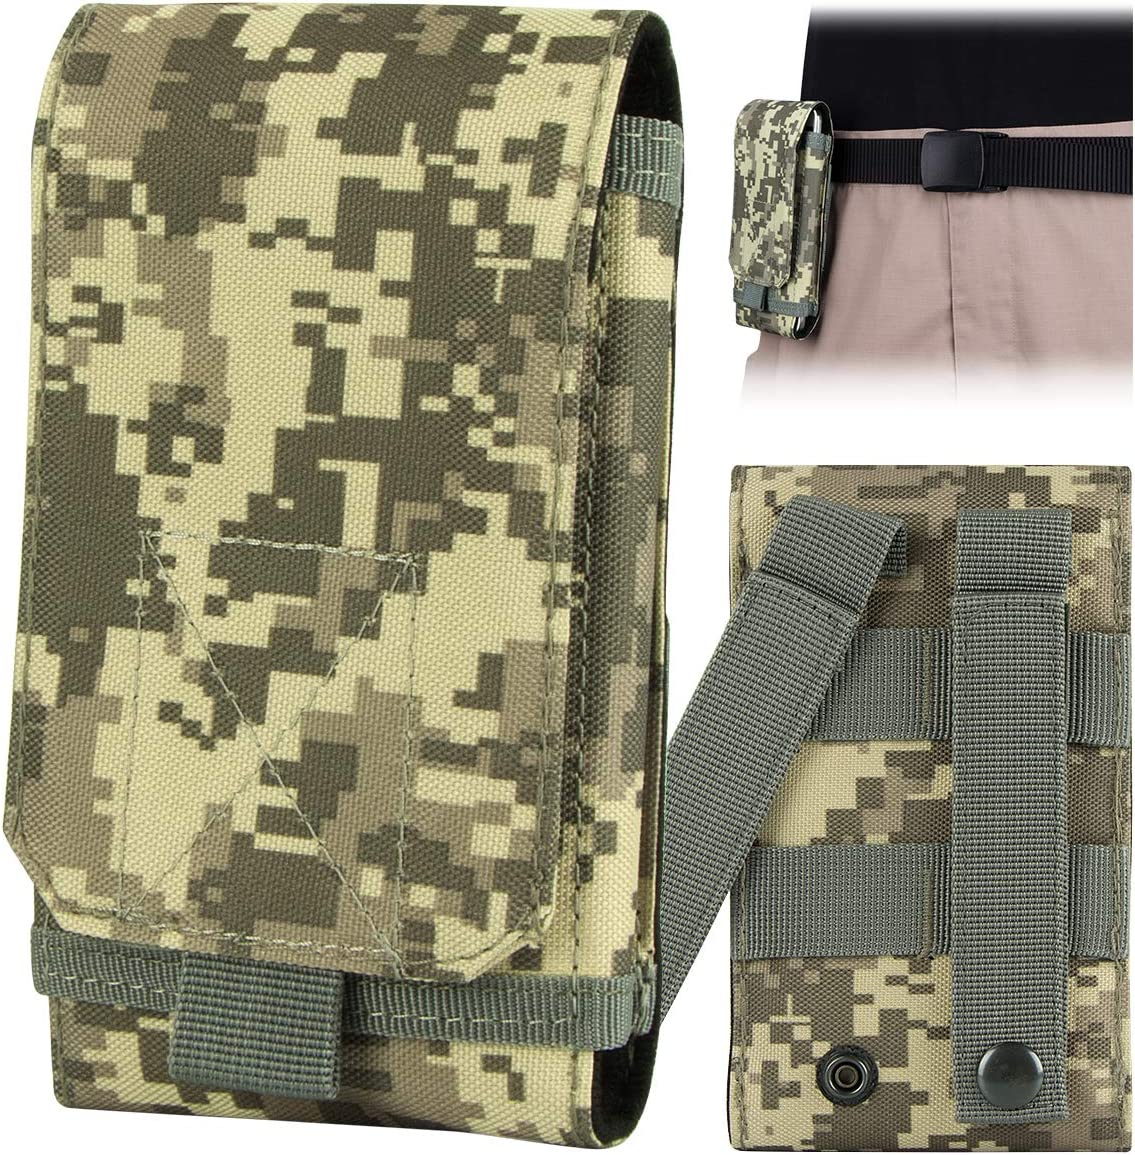 IronSeals Tactical MOLLE Smartphone Holster Universal Mobile Phone Belt Pouch EDC Security Pack Carry Accessory Pouch Belt Loops Waist Bag